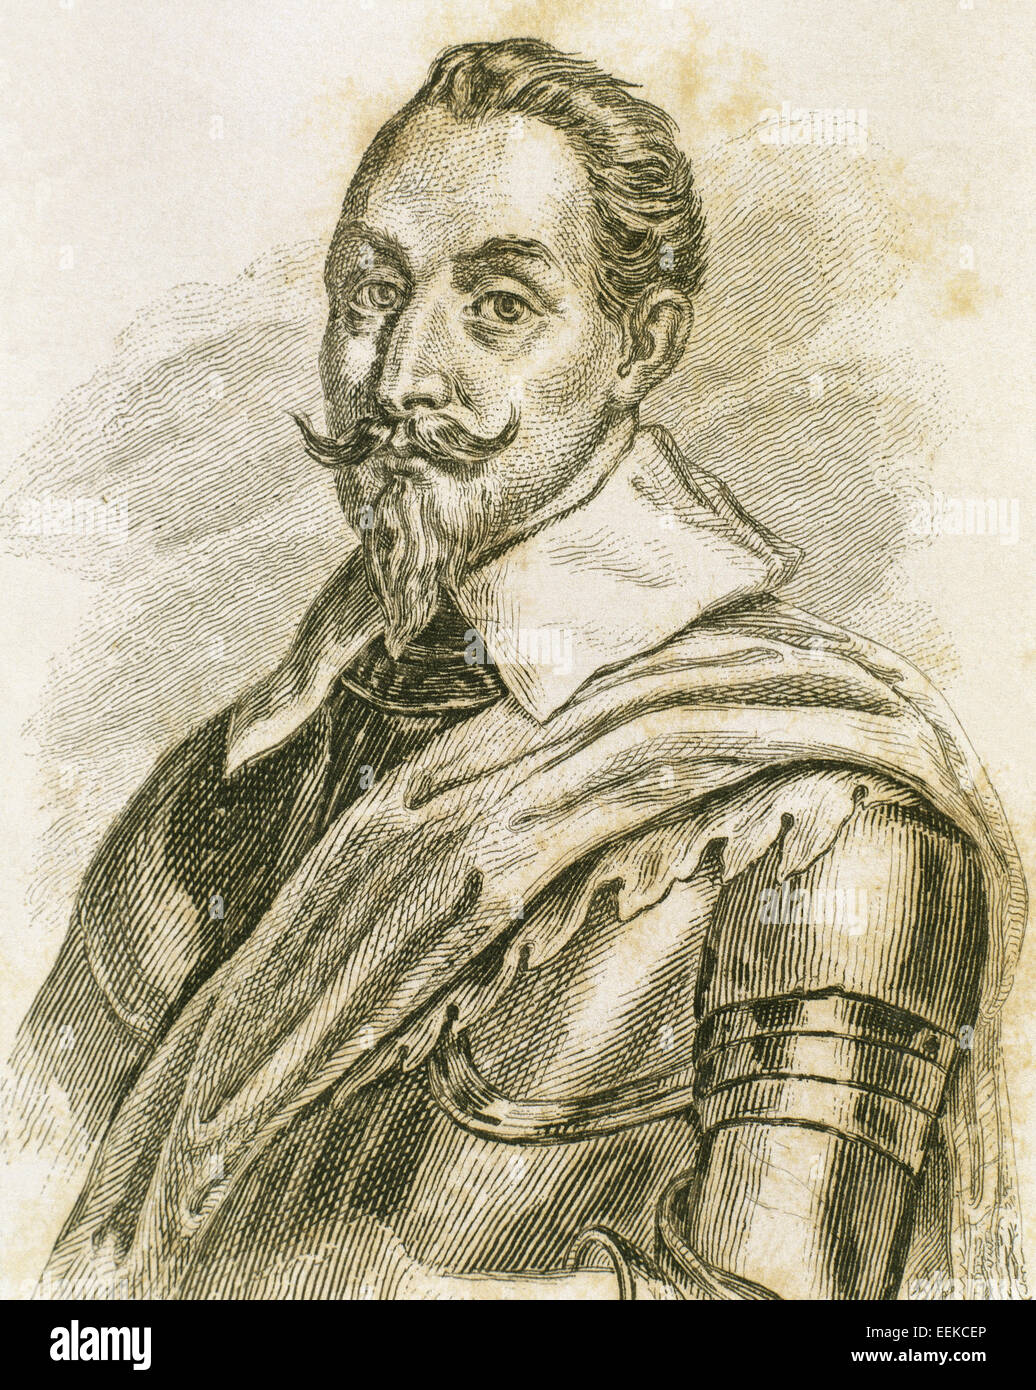 Gustav II Adolf (1594-1632). King of Sweden from 1611 to 1632. Portrait. Engraving. Stock Photo